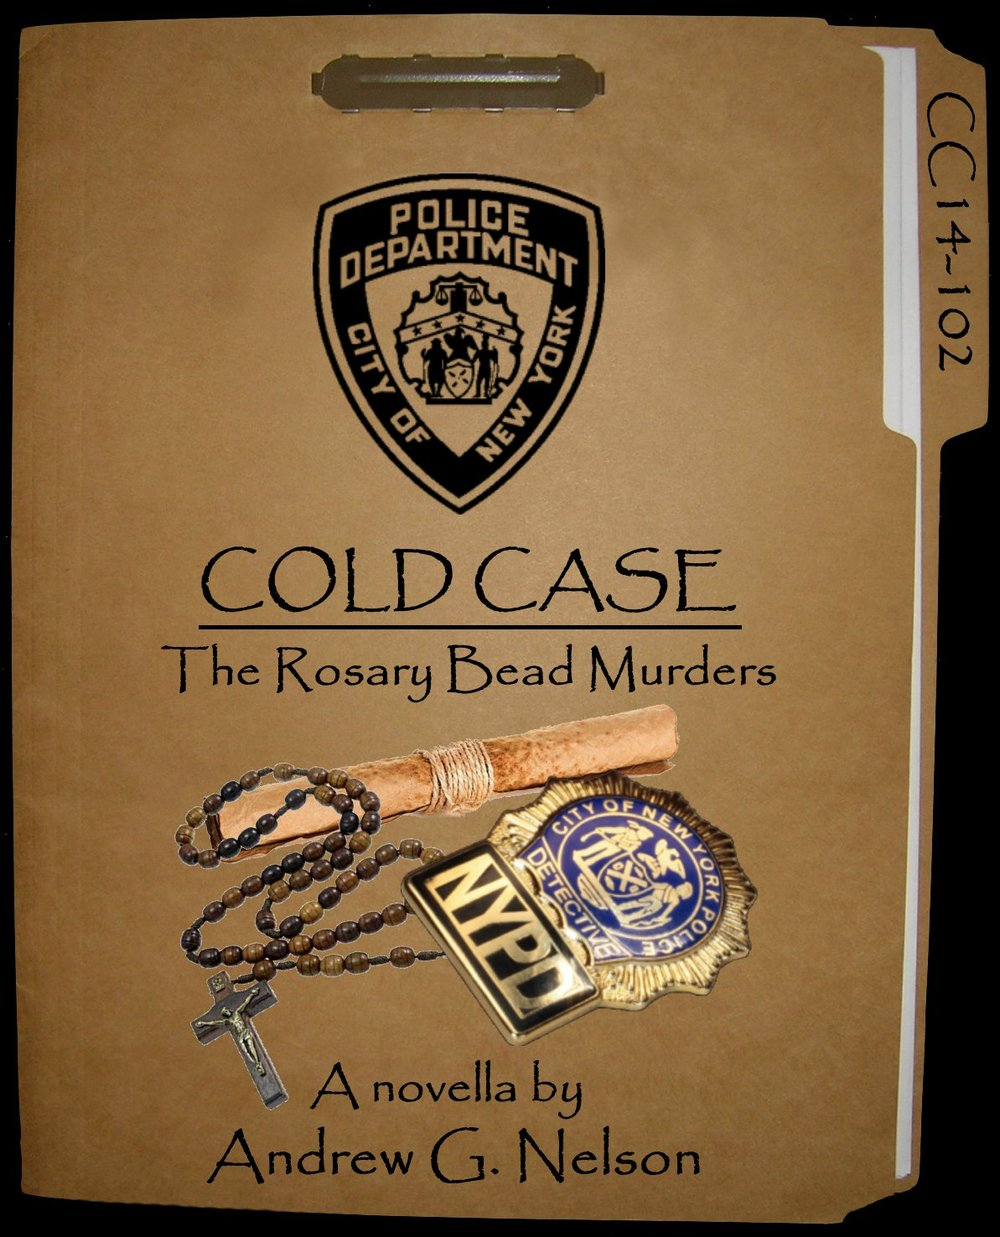 COLD CASE: THE ROSARY BEAD MURDERS